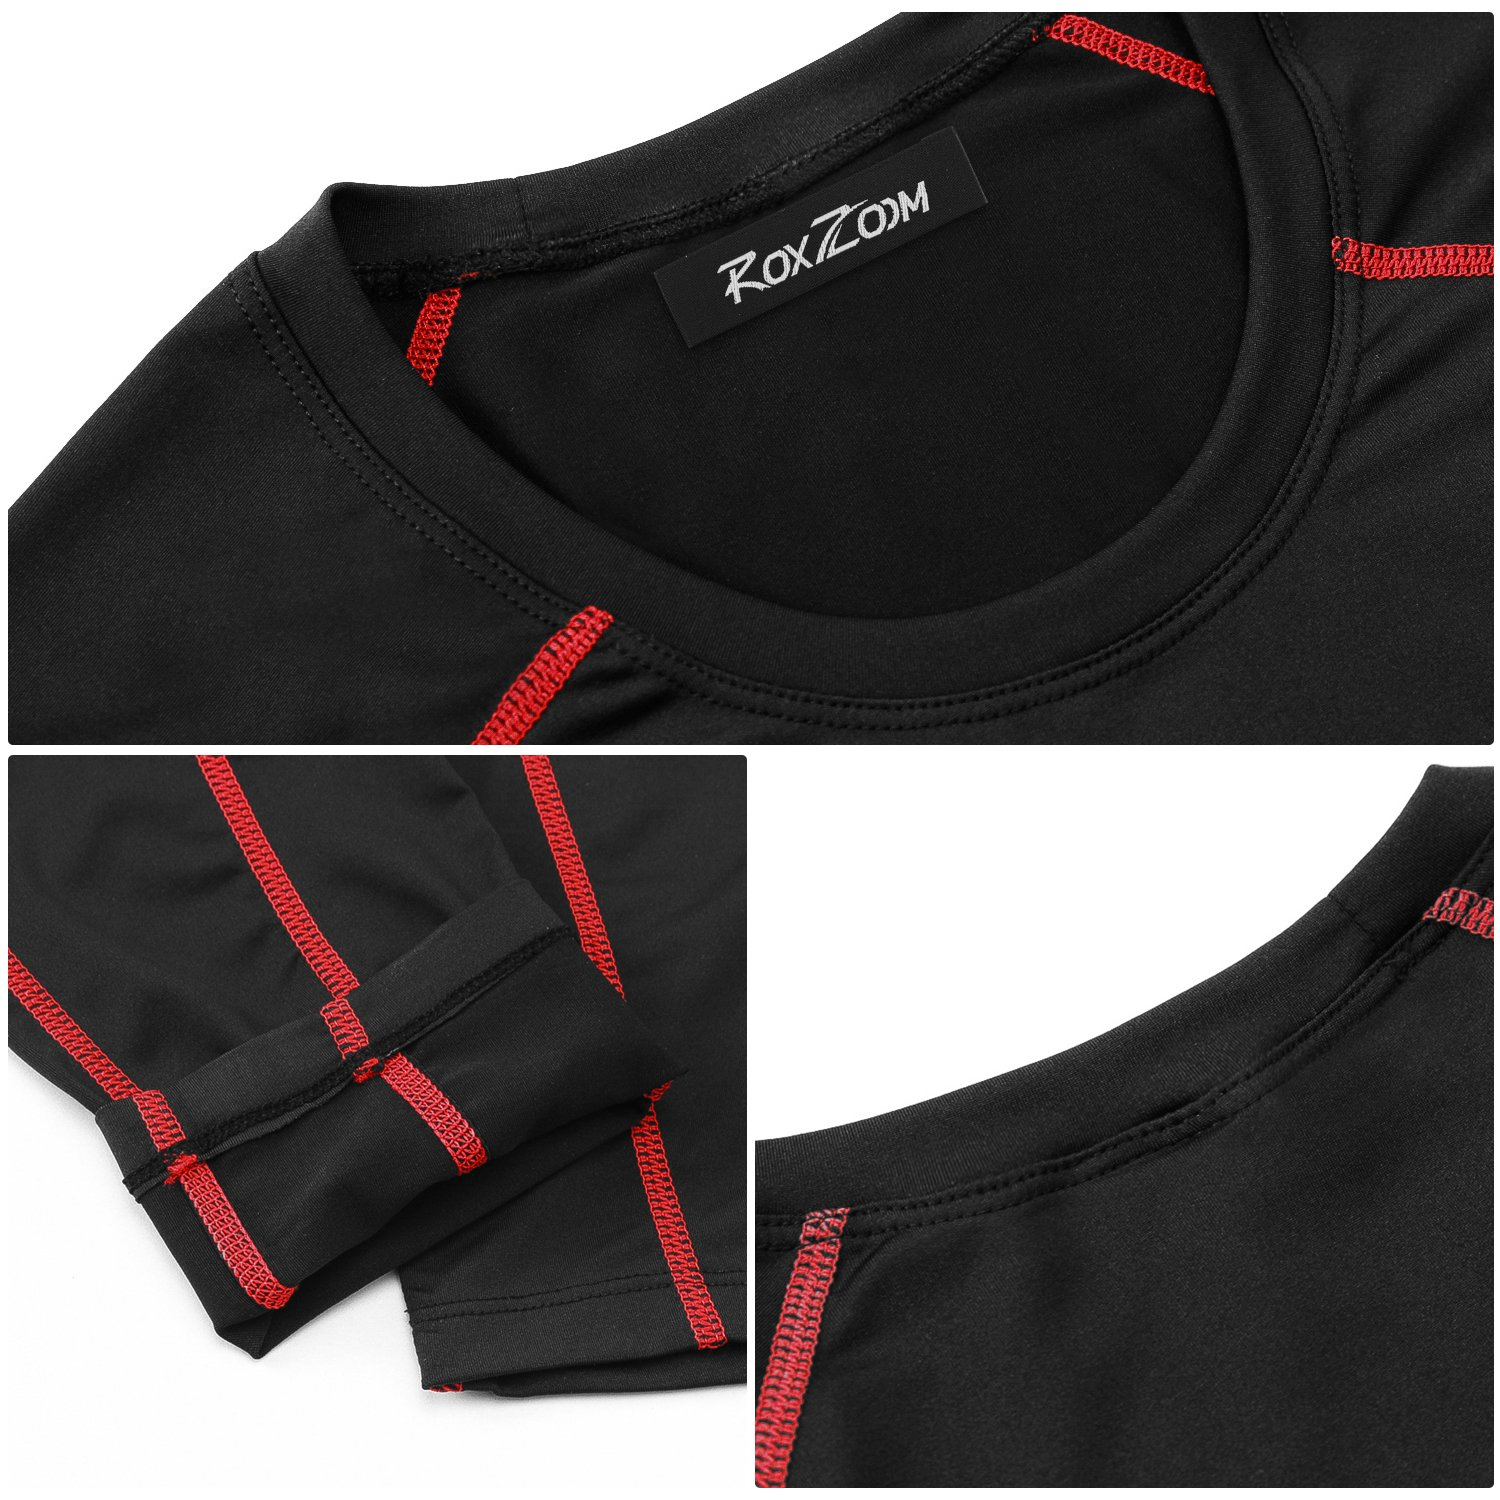 RoxZoom Mens Elastic Fitness Quick-Drying Suit Tight-Fitting Sports Workout T-Shirt Pants Athletic Tops Leggings Suit for Running Jogging